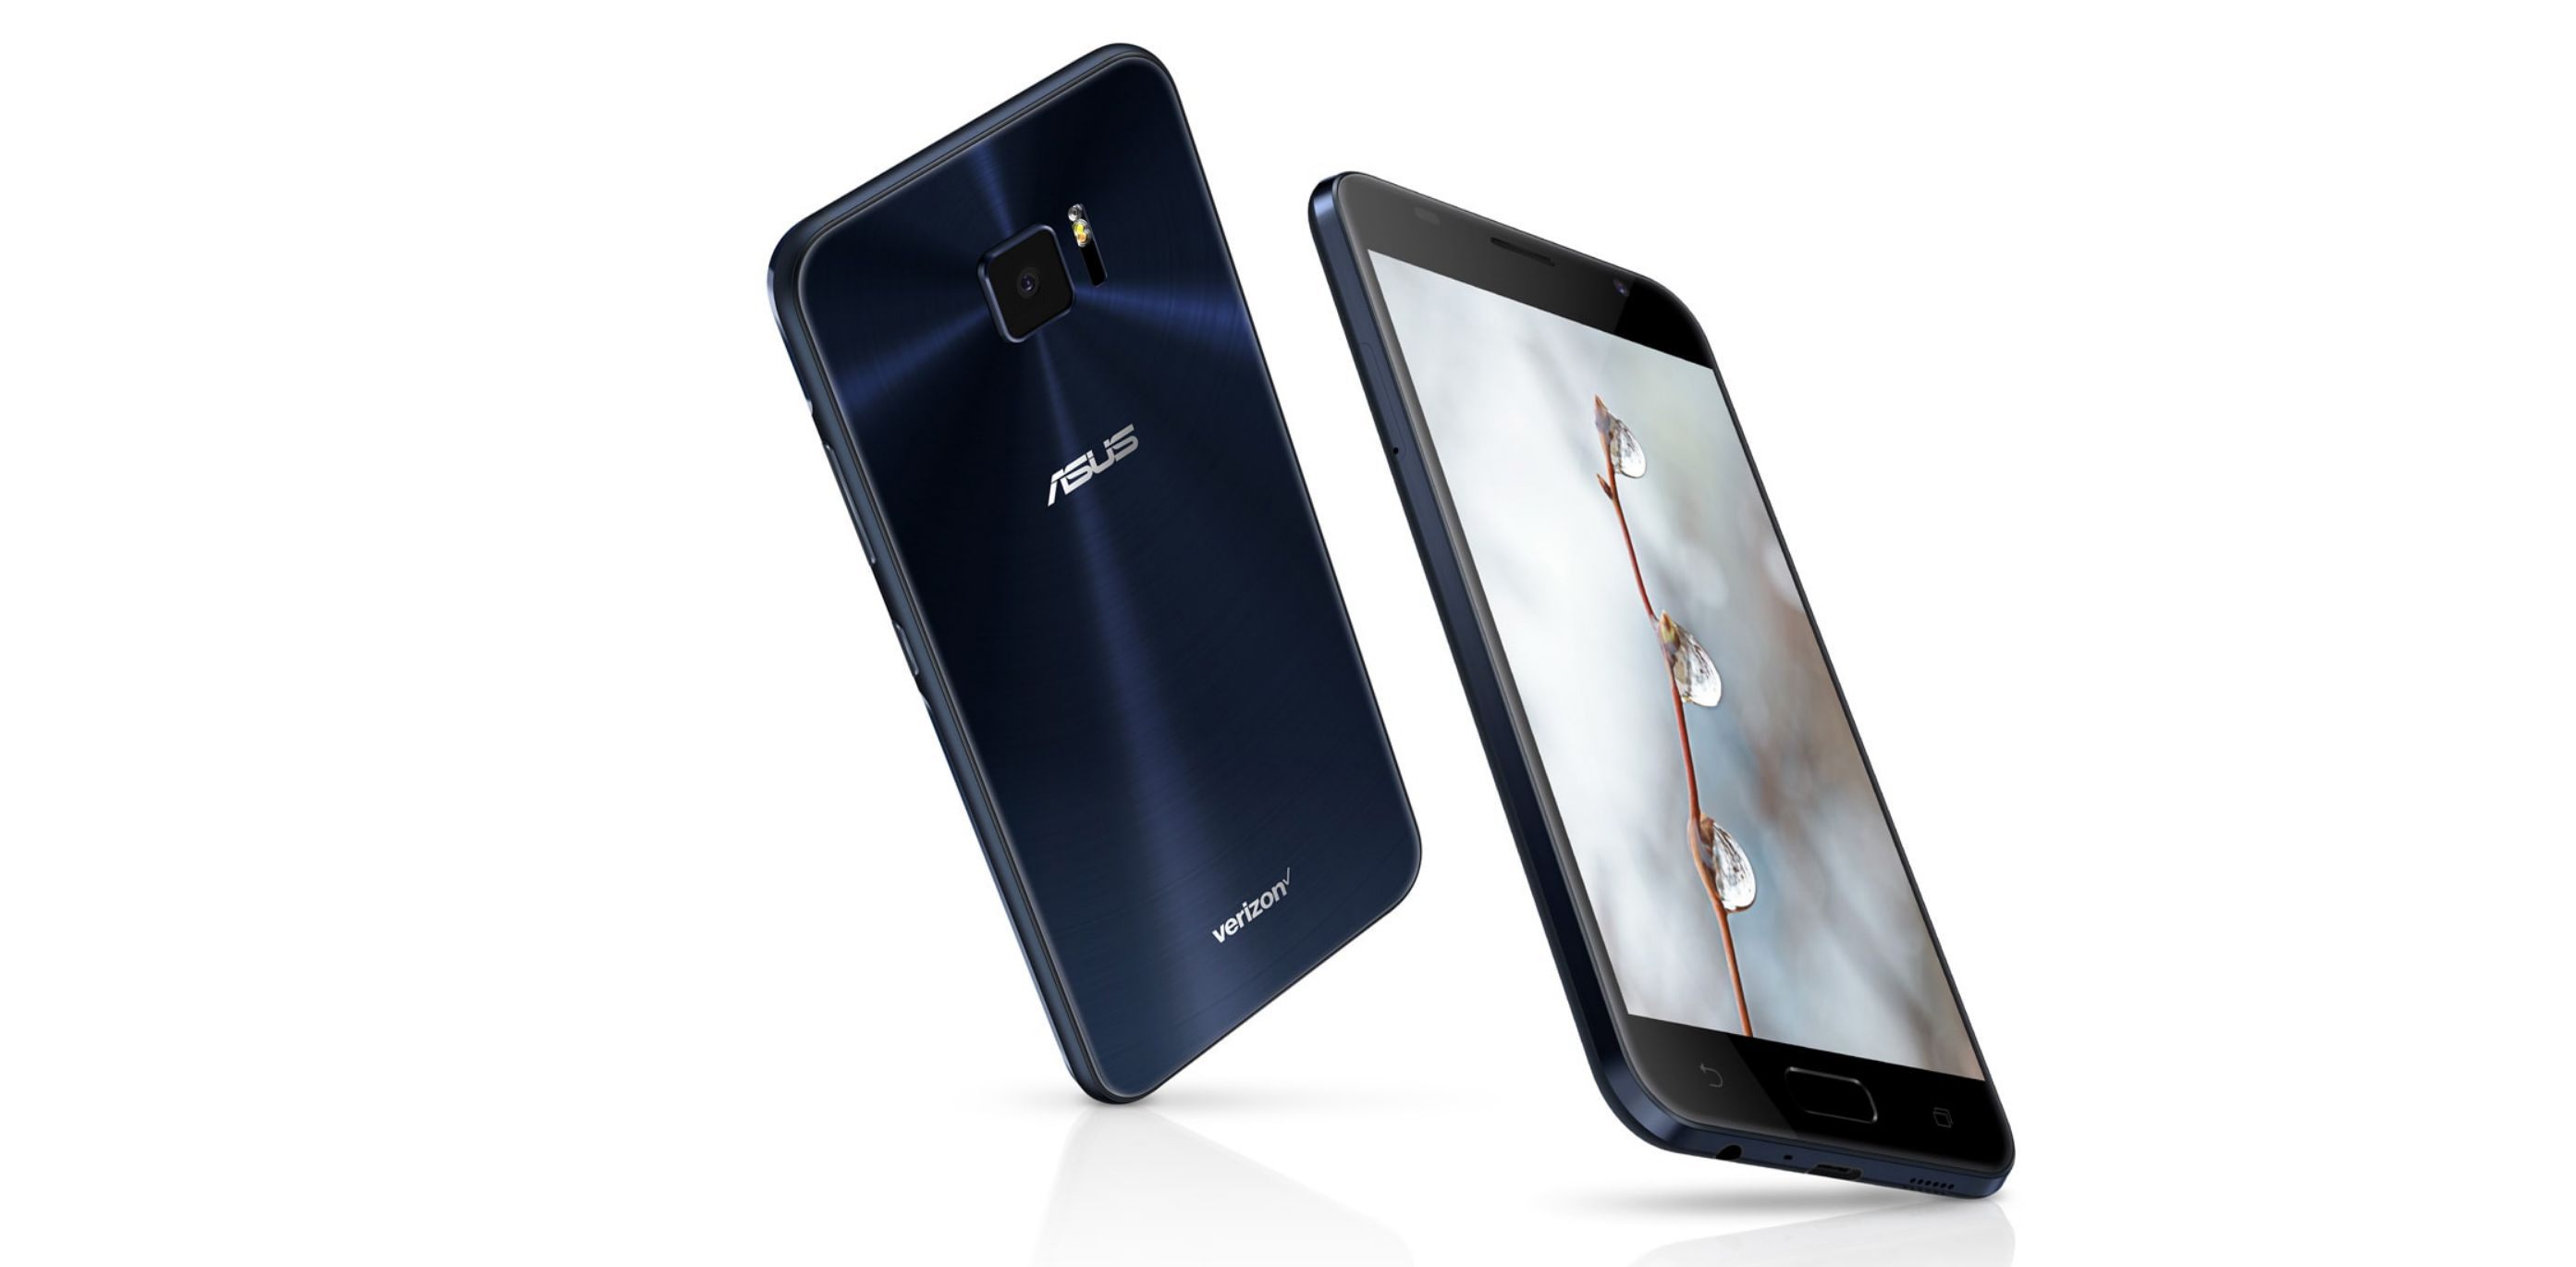 Asus ZenFone V in black front and back view